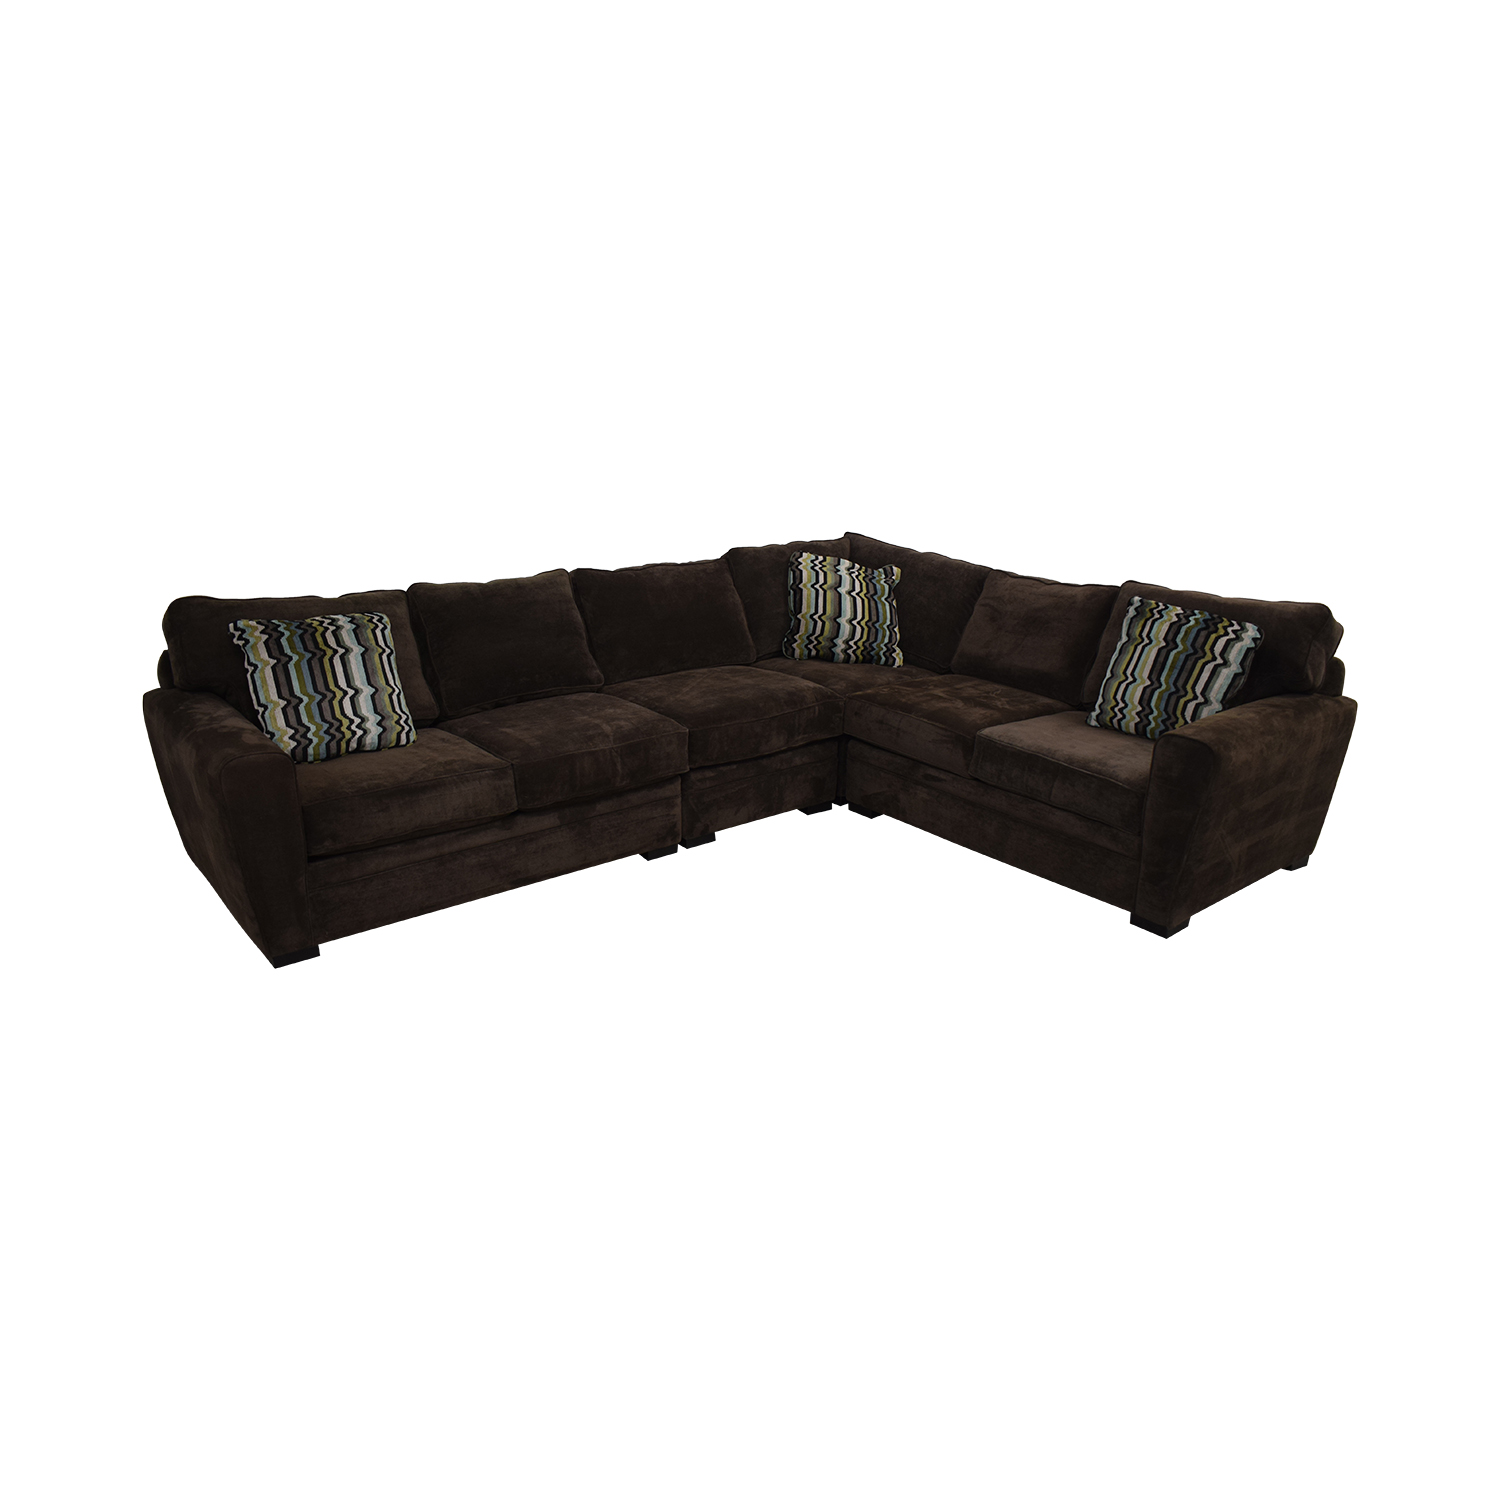 Raymour & Flanigan Brown Velvet L-Shaped Sectional / Sofas